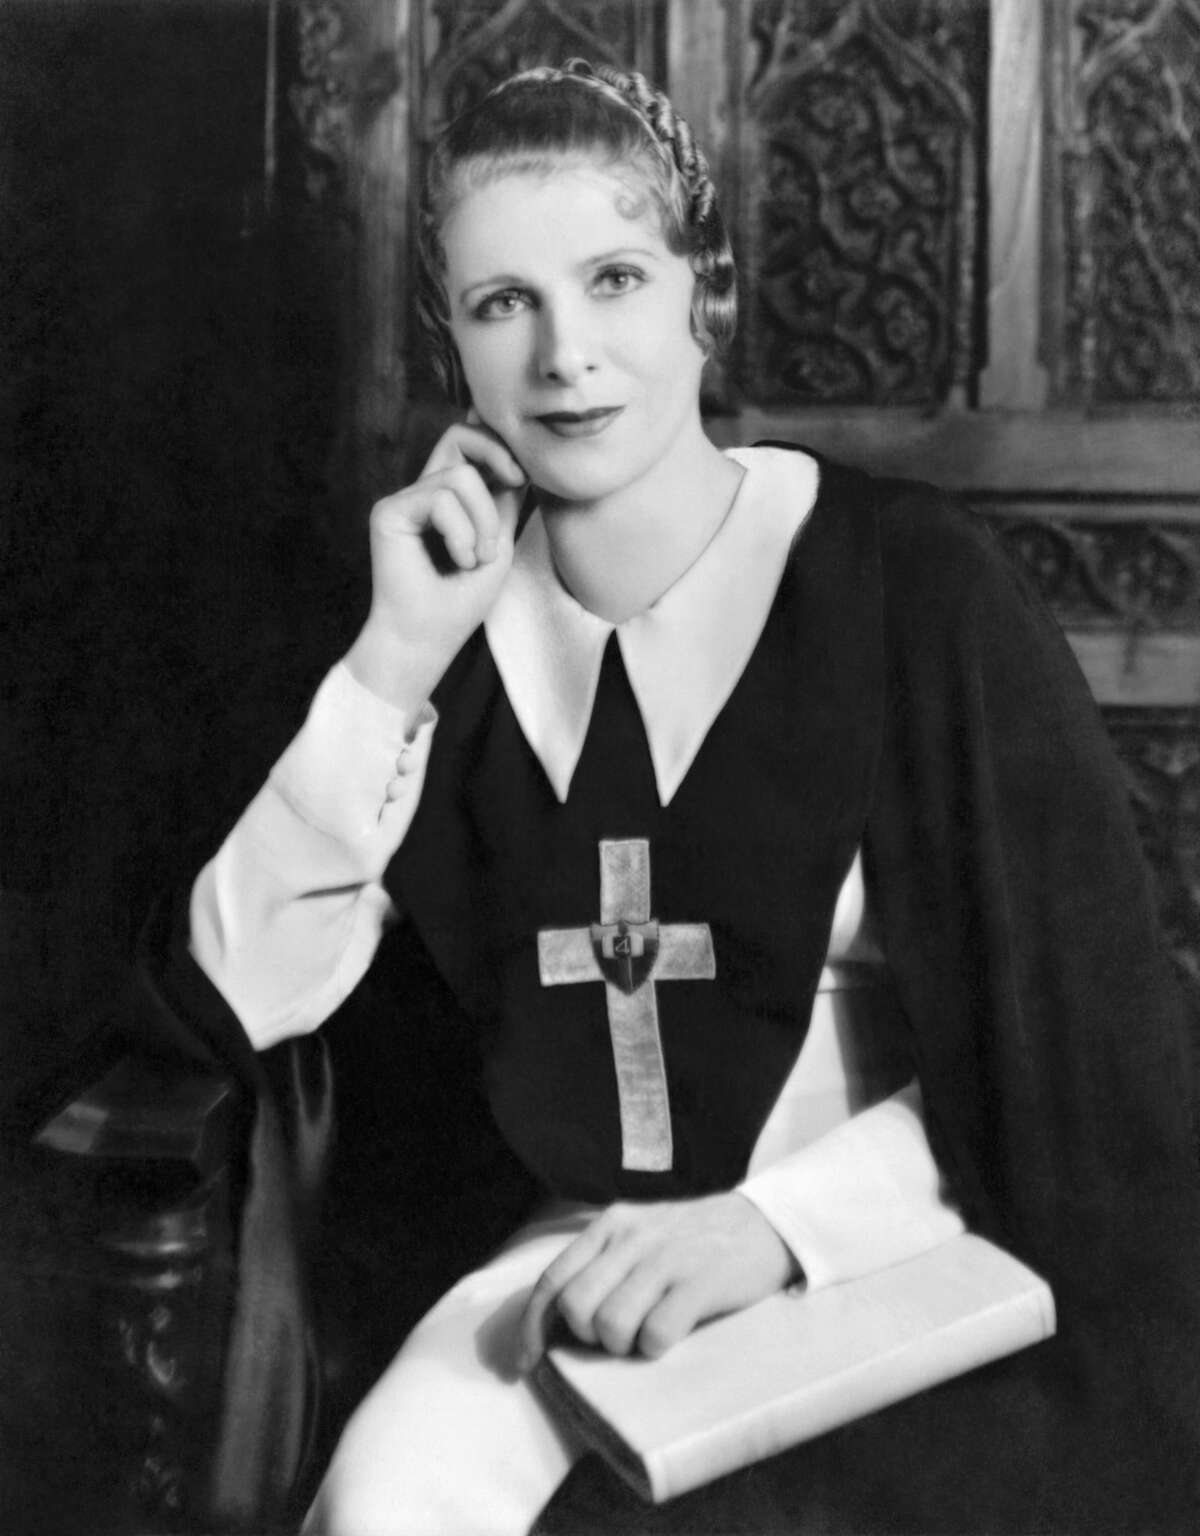 A 1935 portrait of famed evangelist Aimee Semple McPherson at her Angelus Temple in Los Angeles.